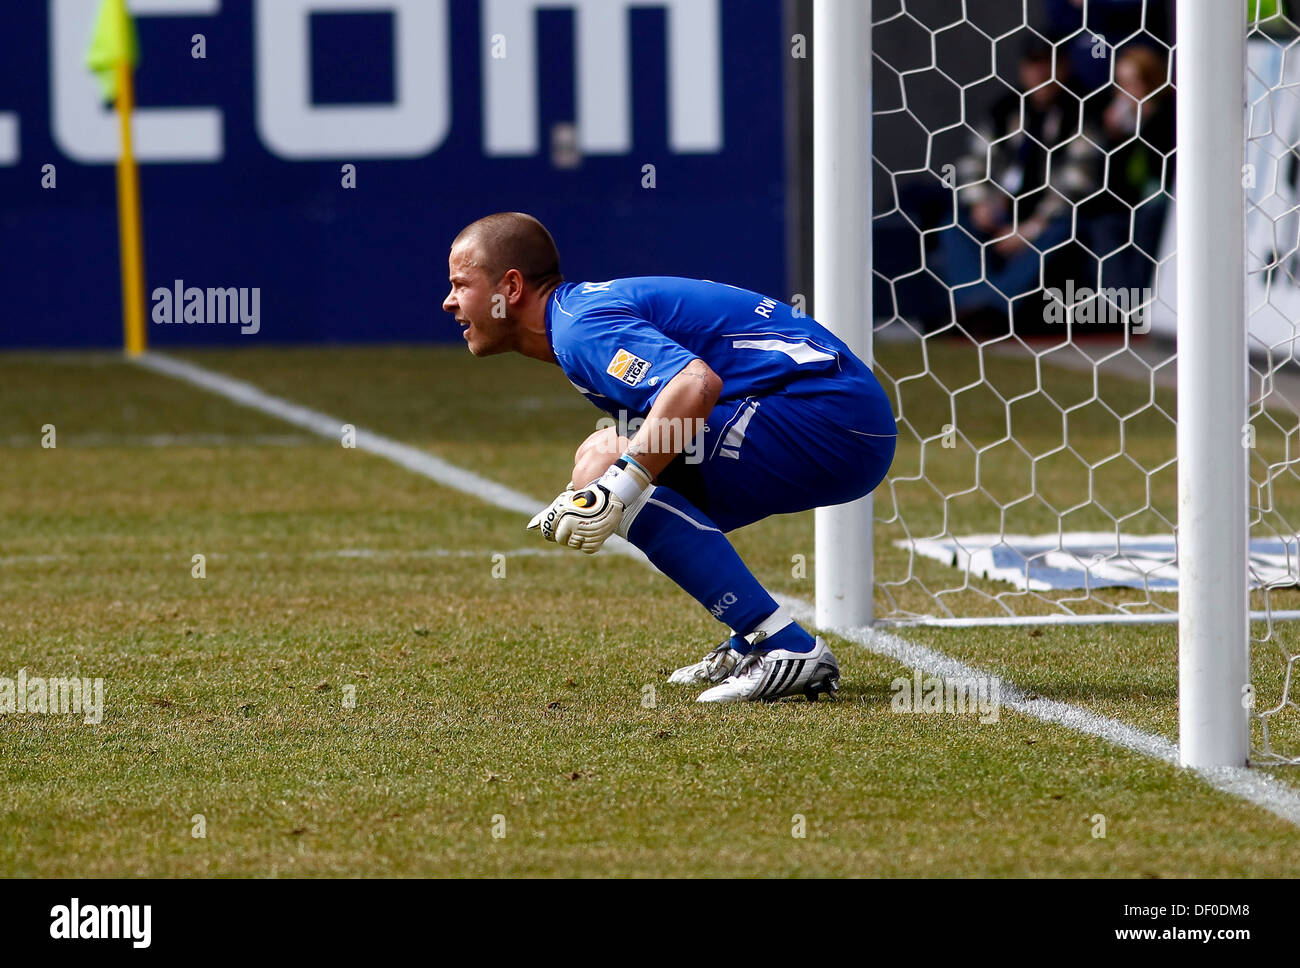 Sascha Kirschstein, goalkeeper of Rot-Weiss Ahlen, preparing for a free kick - Stock Image